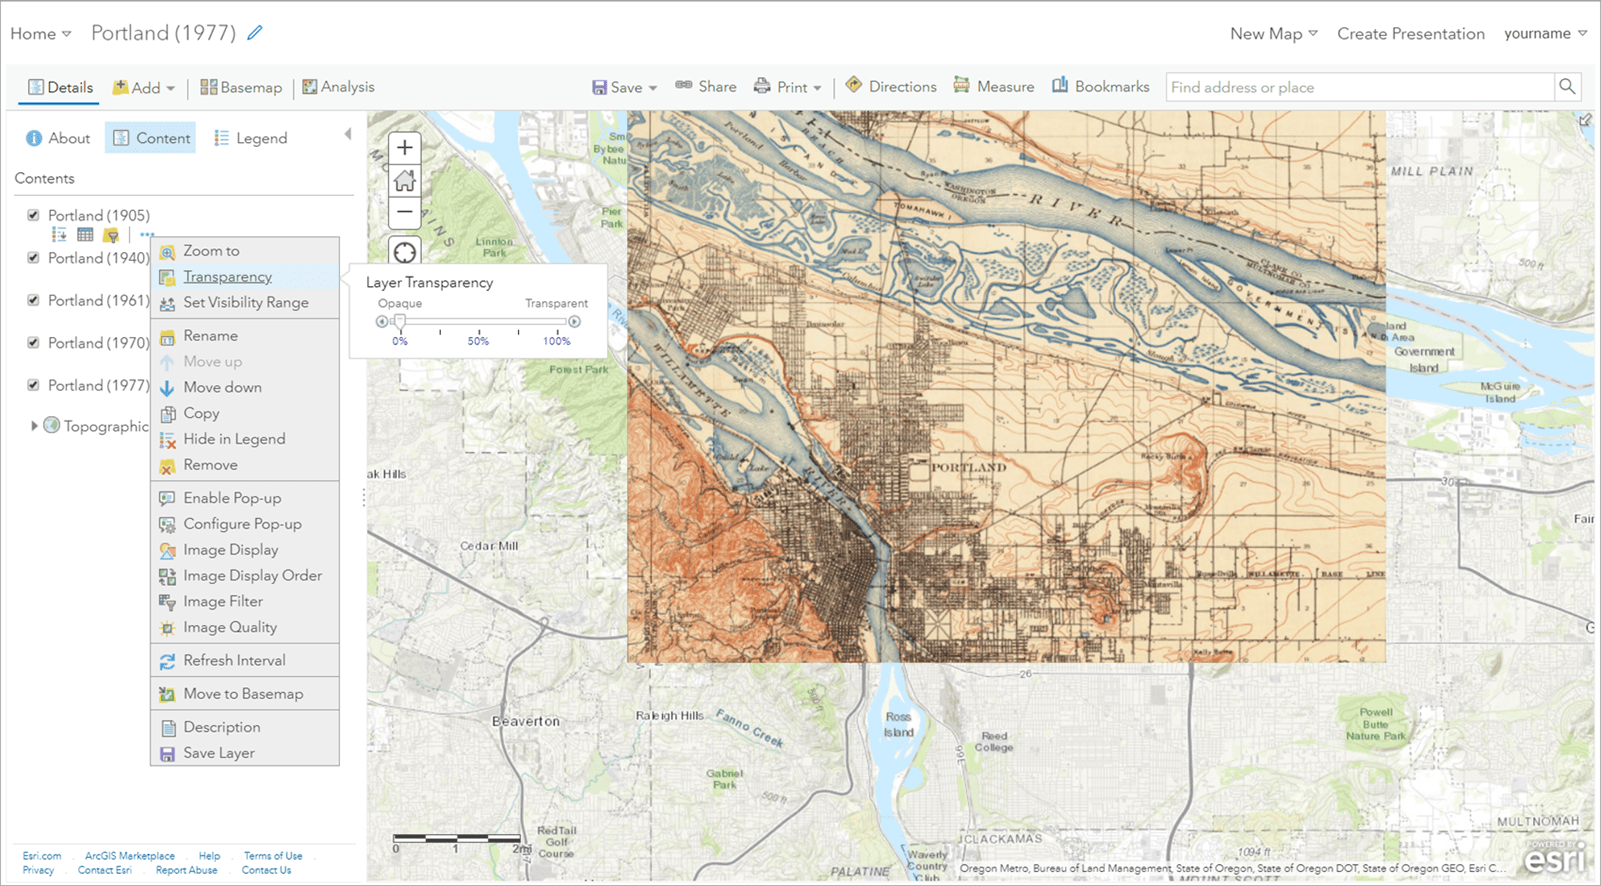 Topo Explorer app: Web Map